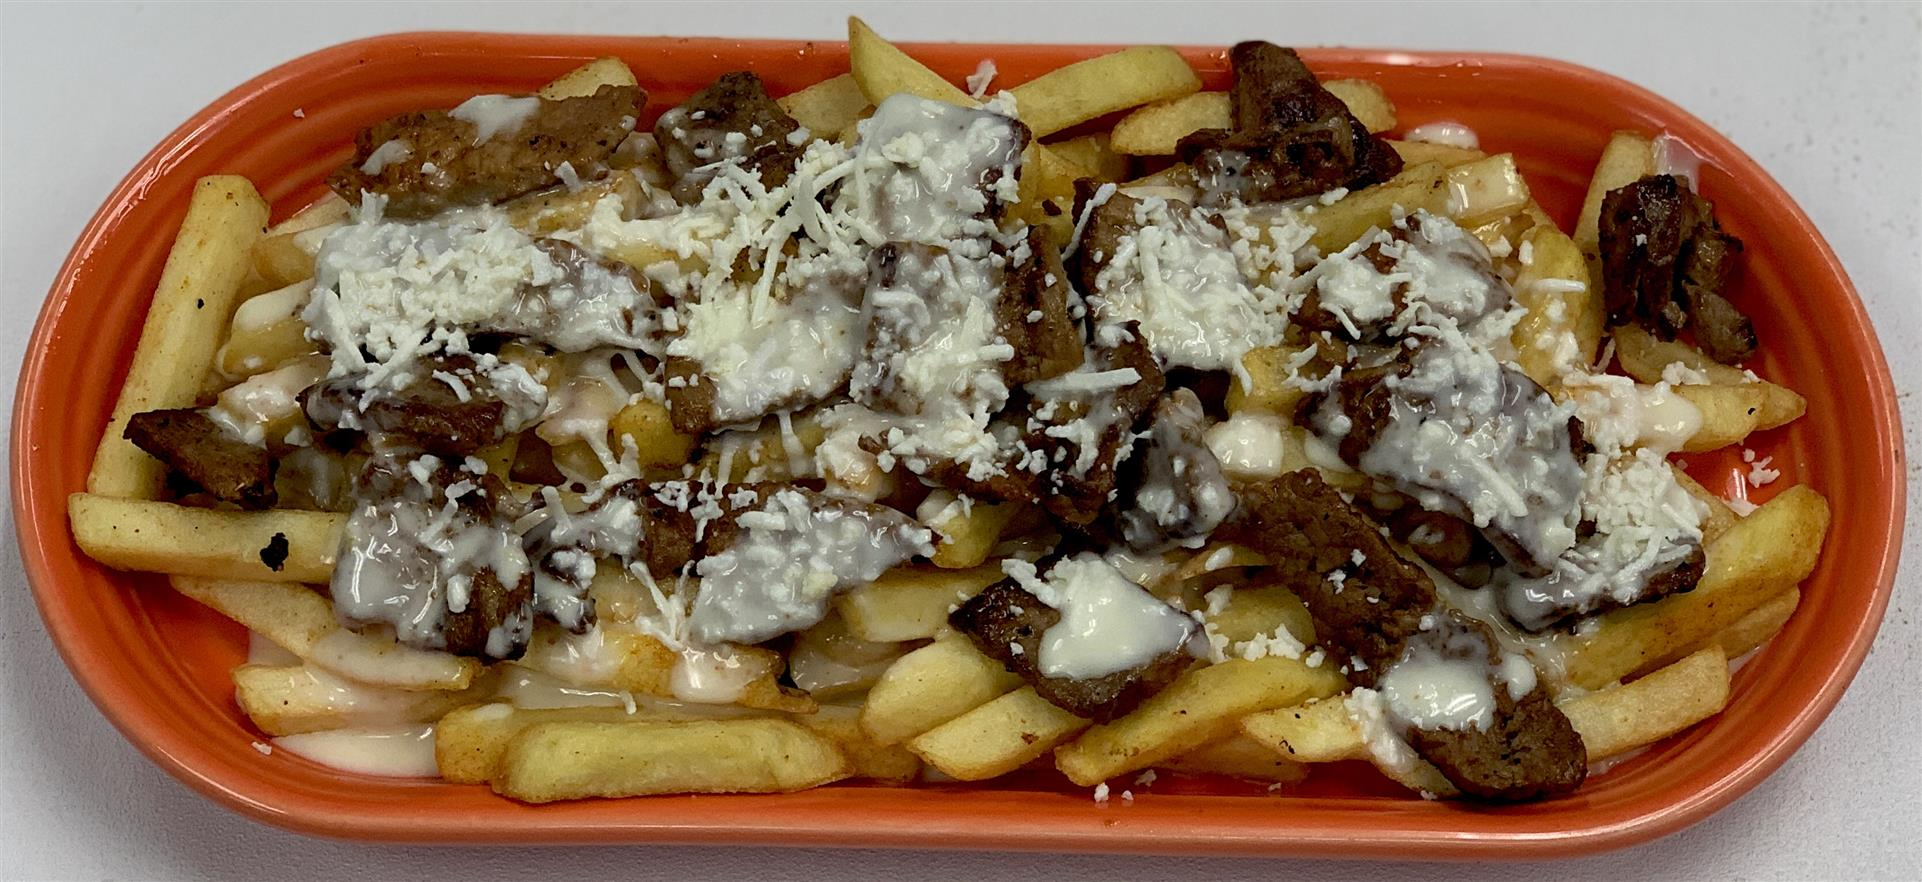 Carne Asada Fries: Fries, steak, cheese sauce and sprinkled cheese